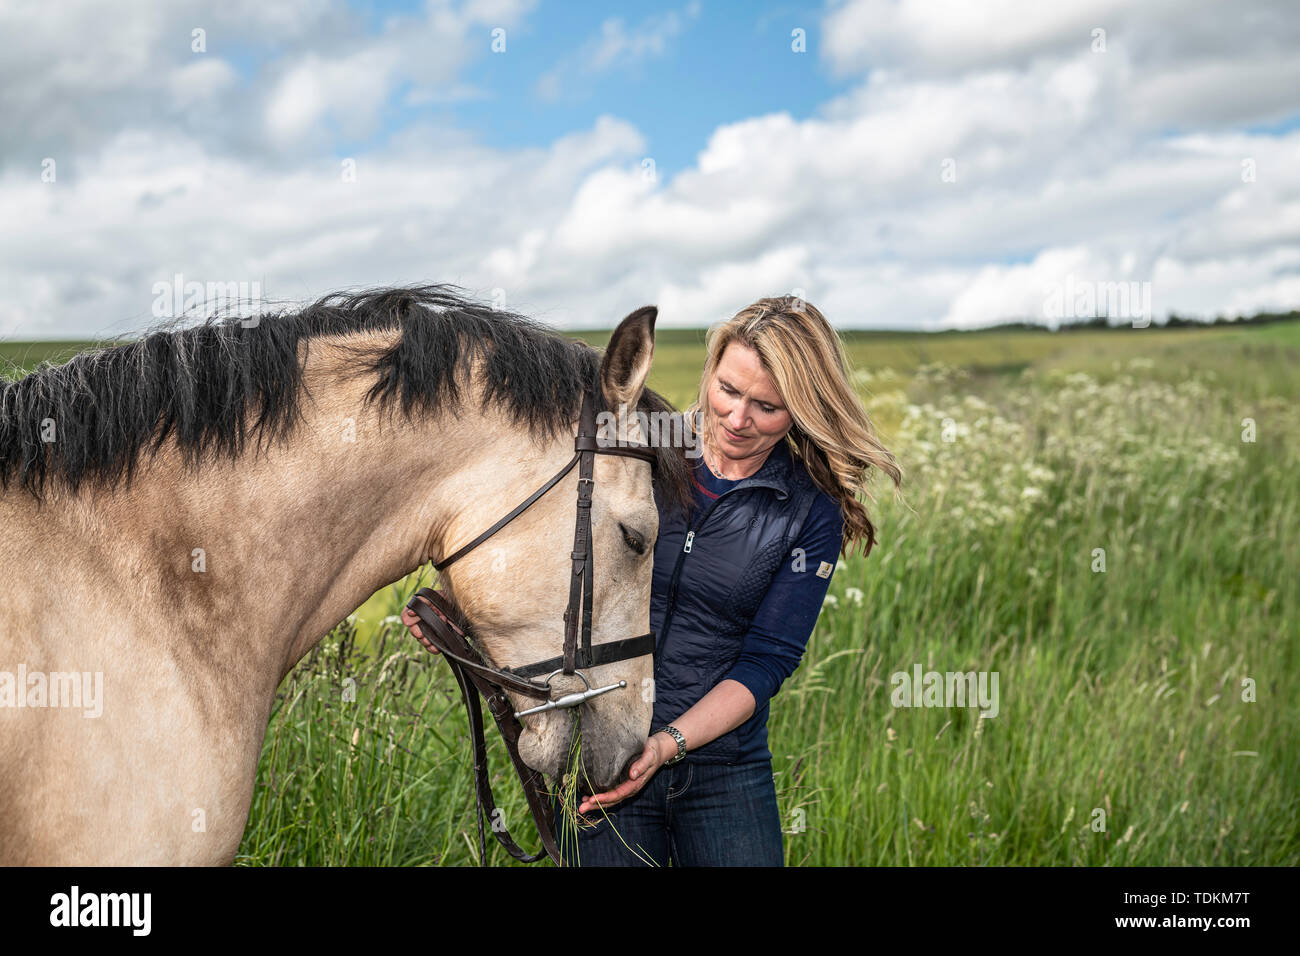 Oxton, Lauder, Scottish Borders, UK. 17th June 2019. Lesley McCrindle prepares to show her Connemara Ponies at the Royal Highland Show in Edinburgh this week. The breed are known for their versatility and endurance, orginating of course from Ireland. Credit: Chris Strickland / Alamy Live News - Stock Image